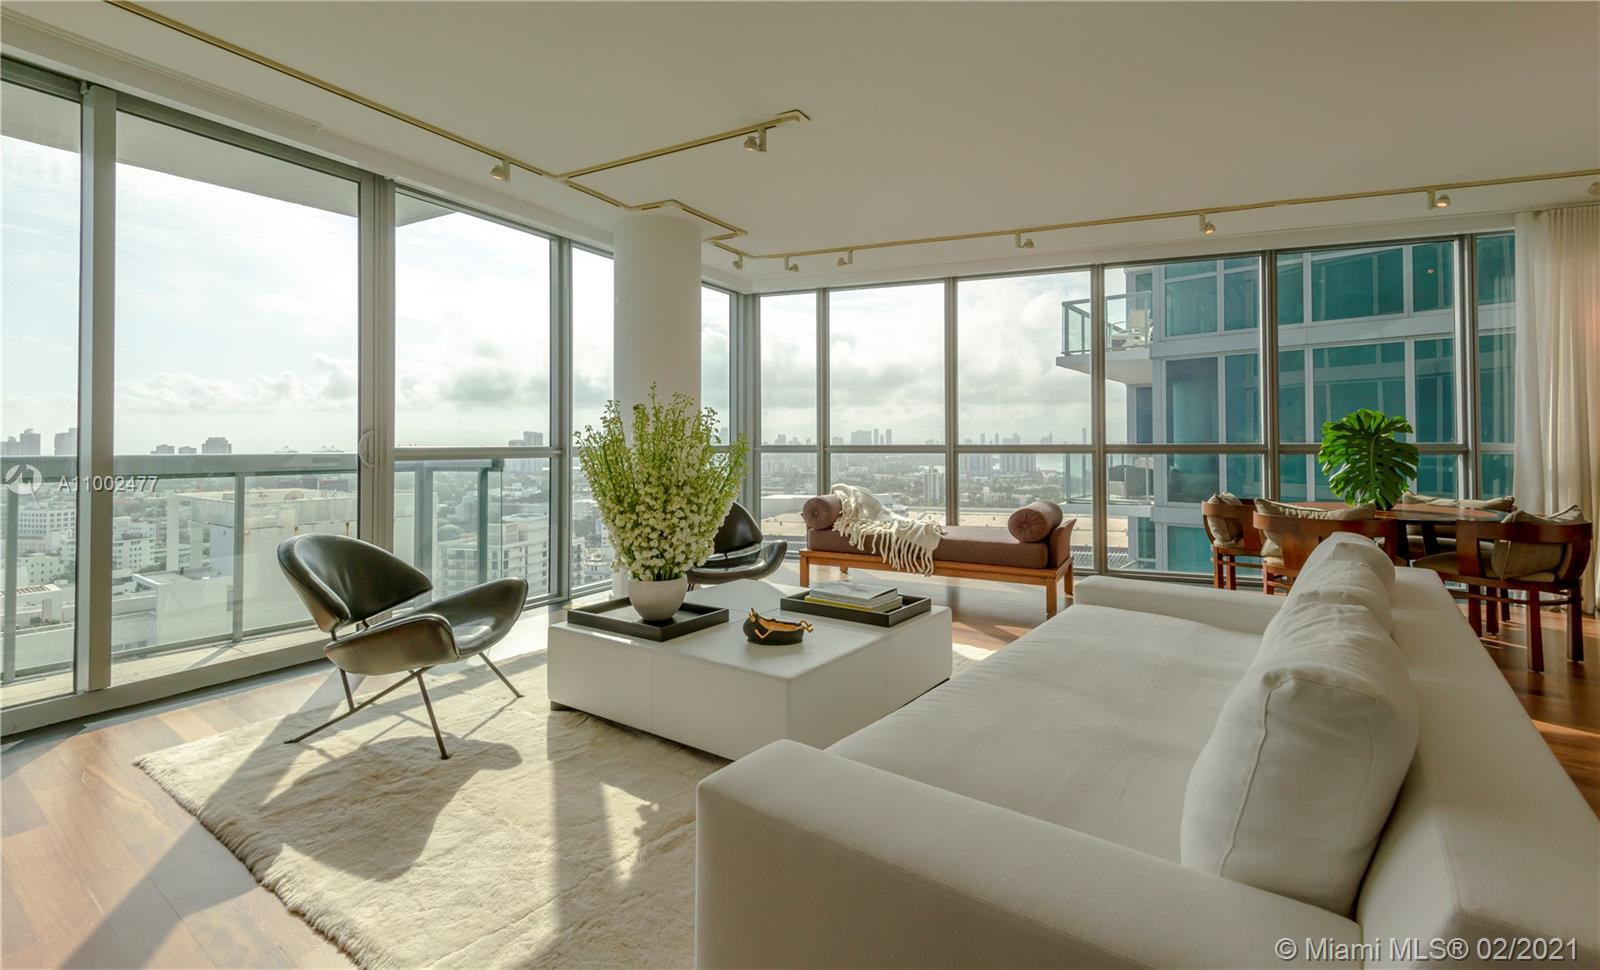 Rarely available 06 line at Setai Resort & Residences with 5-Star services, luxury amenities includi